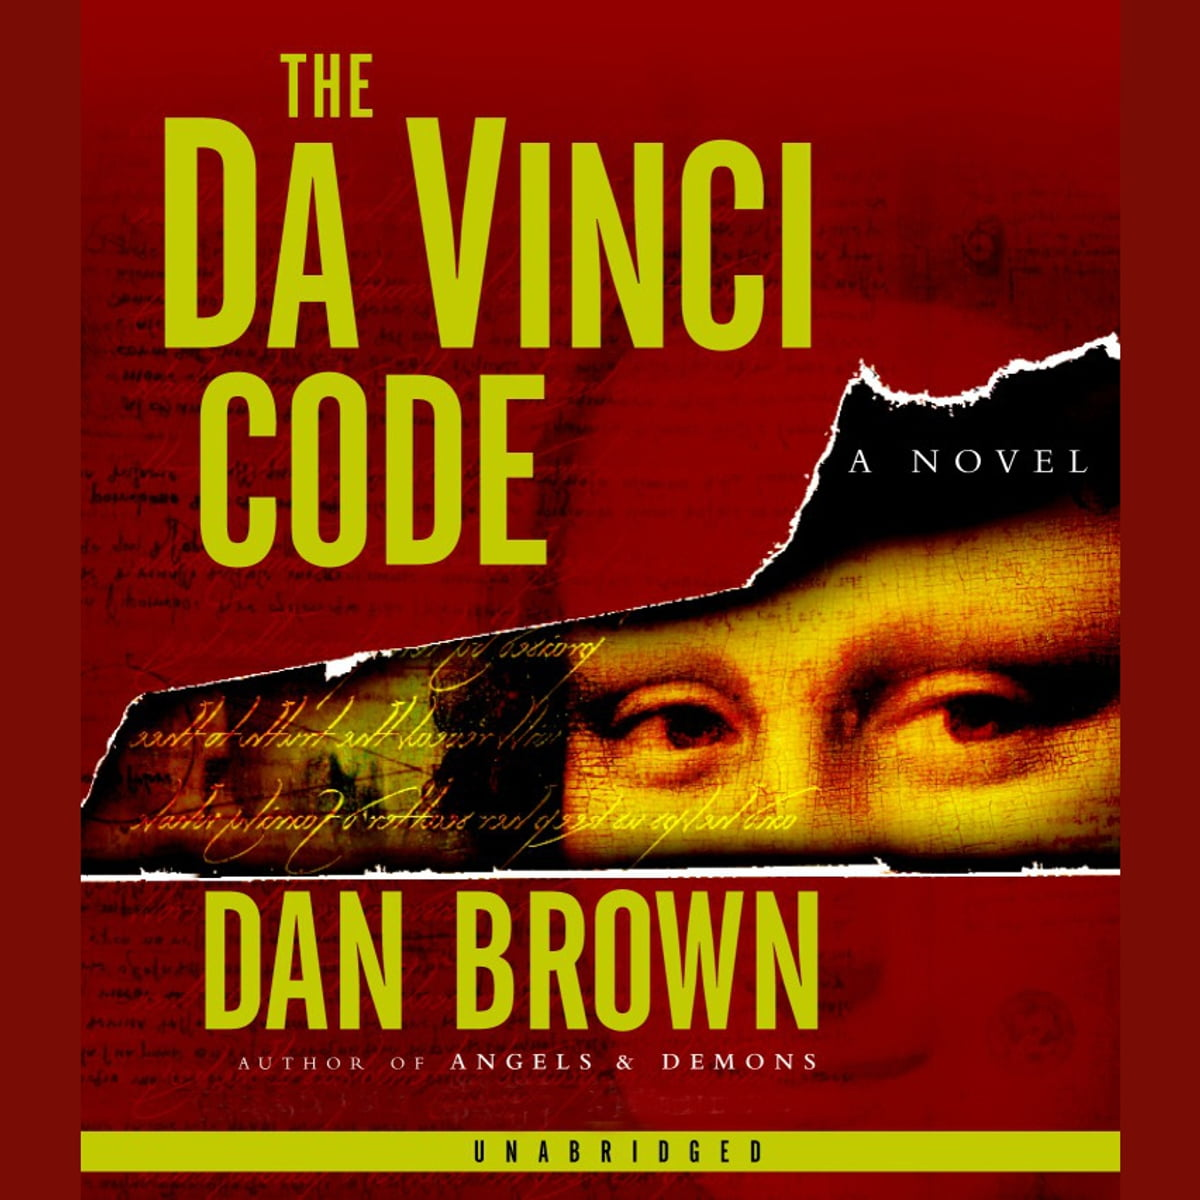 The da vinci code audiobook by dan brown 9781415934777 rakuten the da vinci code audiobook by dan brown 9781415934777 rakuten kobo buycottarizona